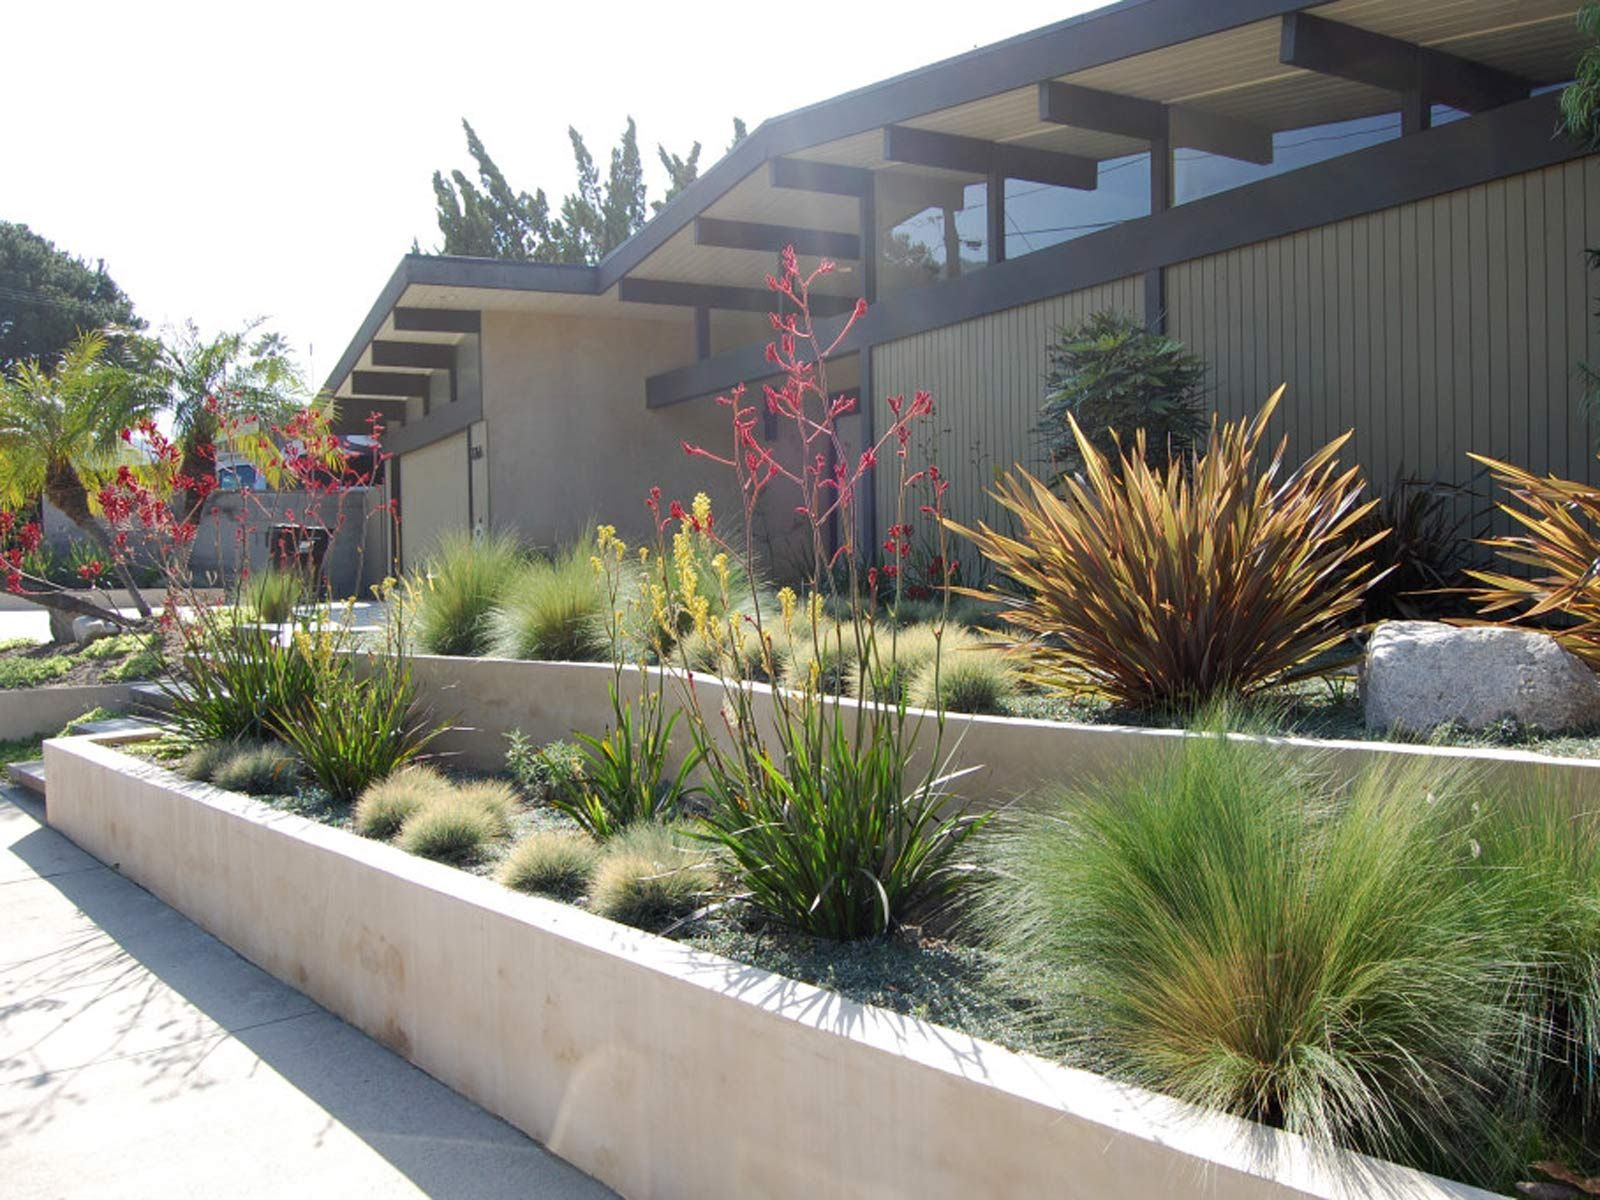 Modern Drought Tolerant Landscaping With Gravel And Small Plants Outdoor Garden Tropical For Natural Home Design